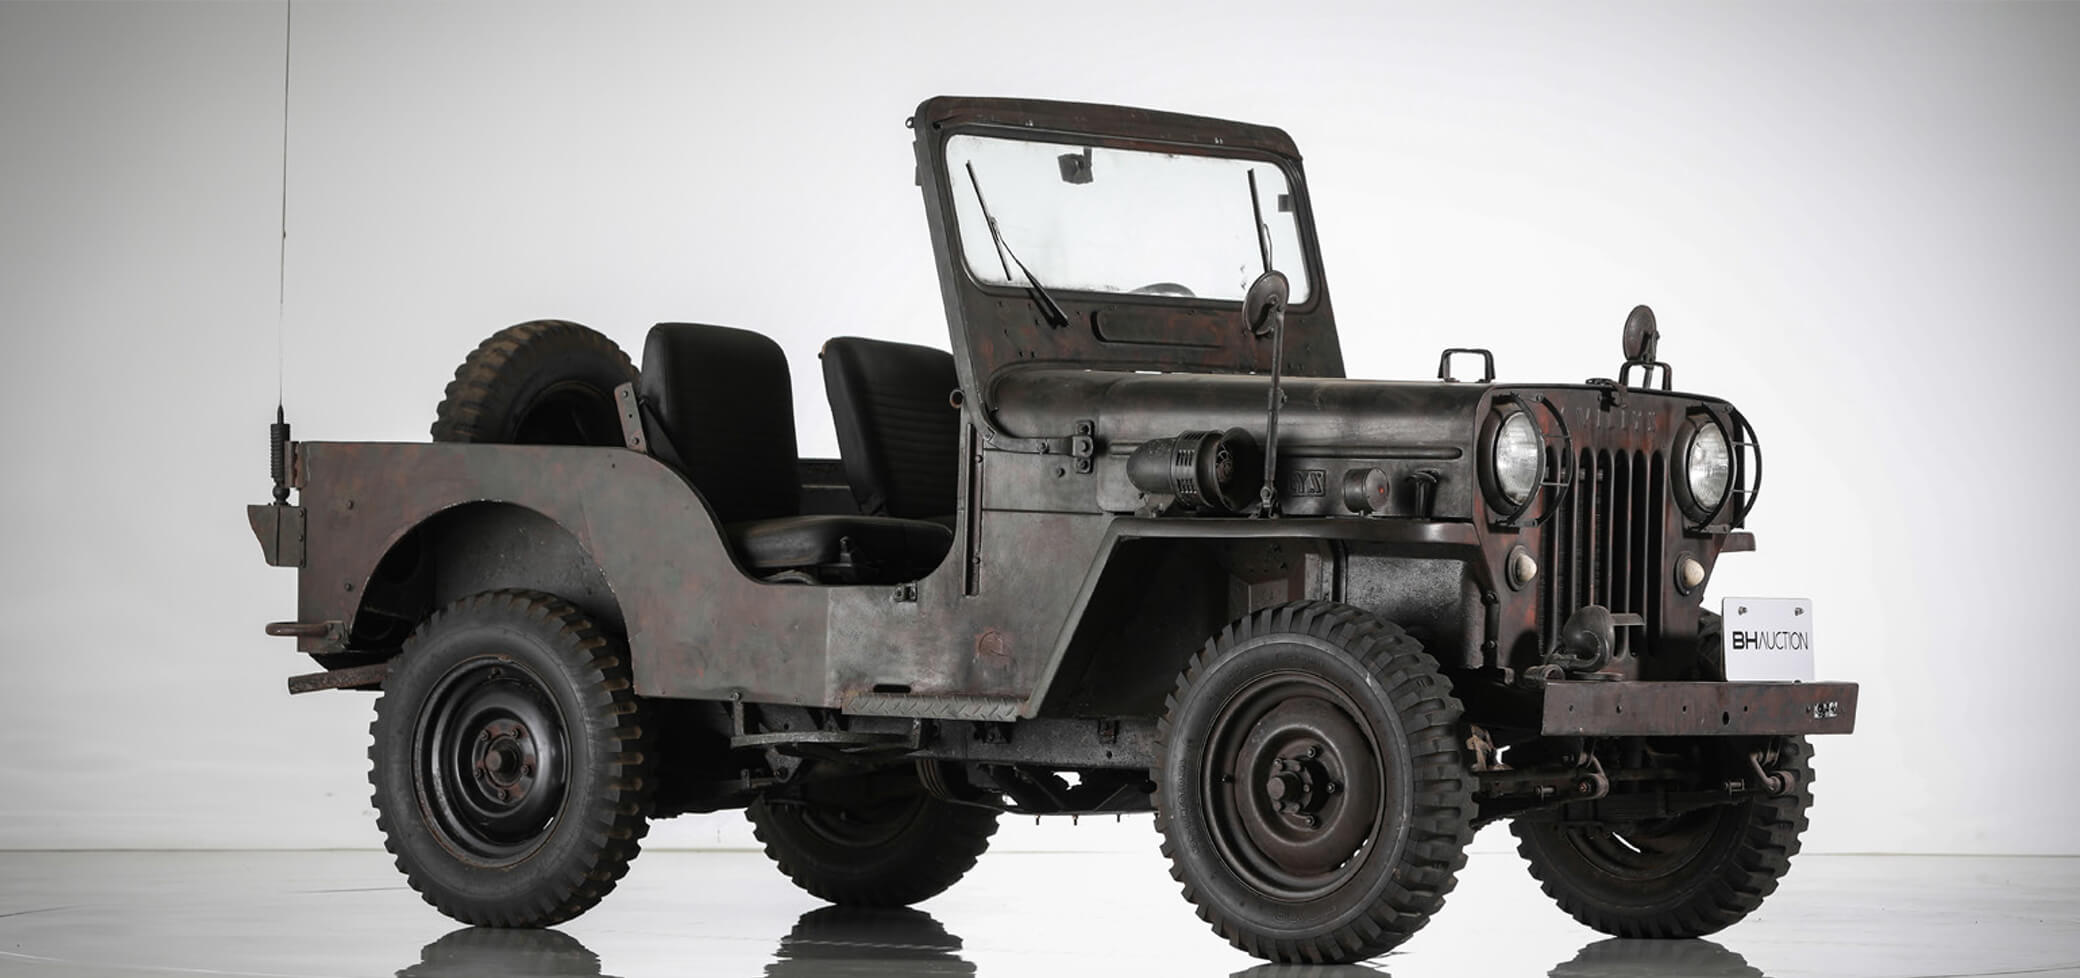 Mitsubishi Willys Jeep CJ3b, 1959